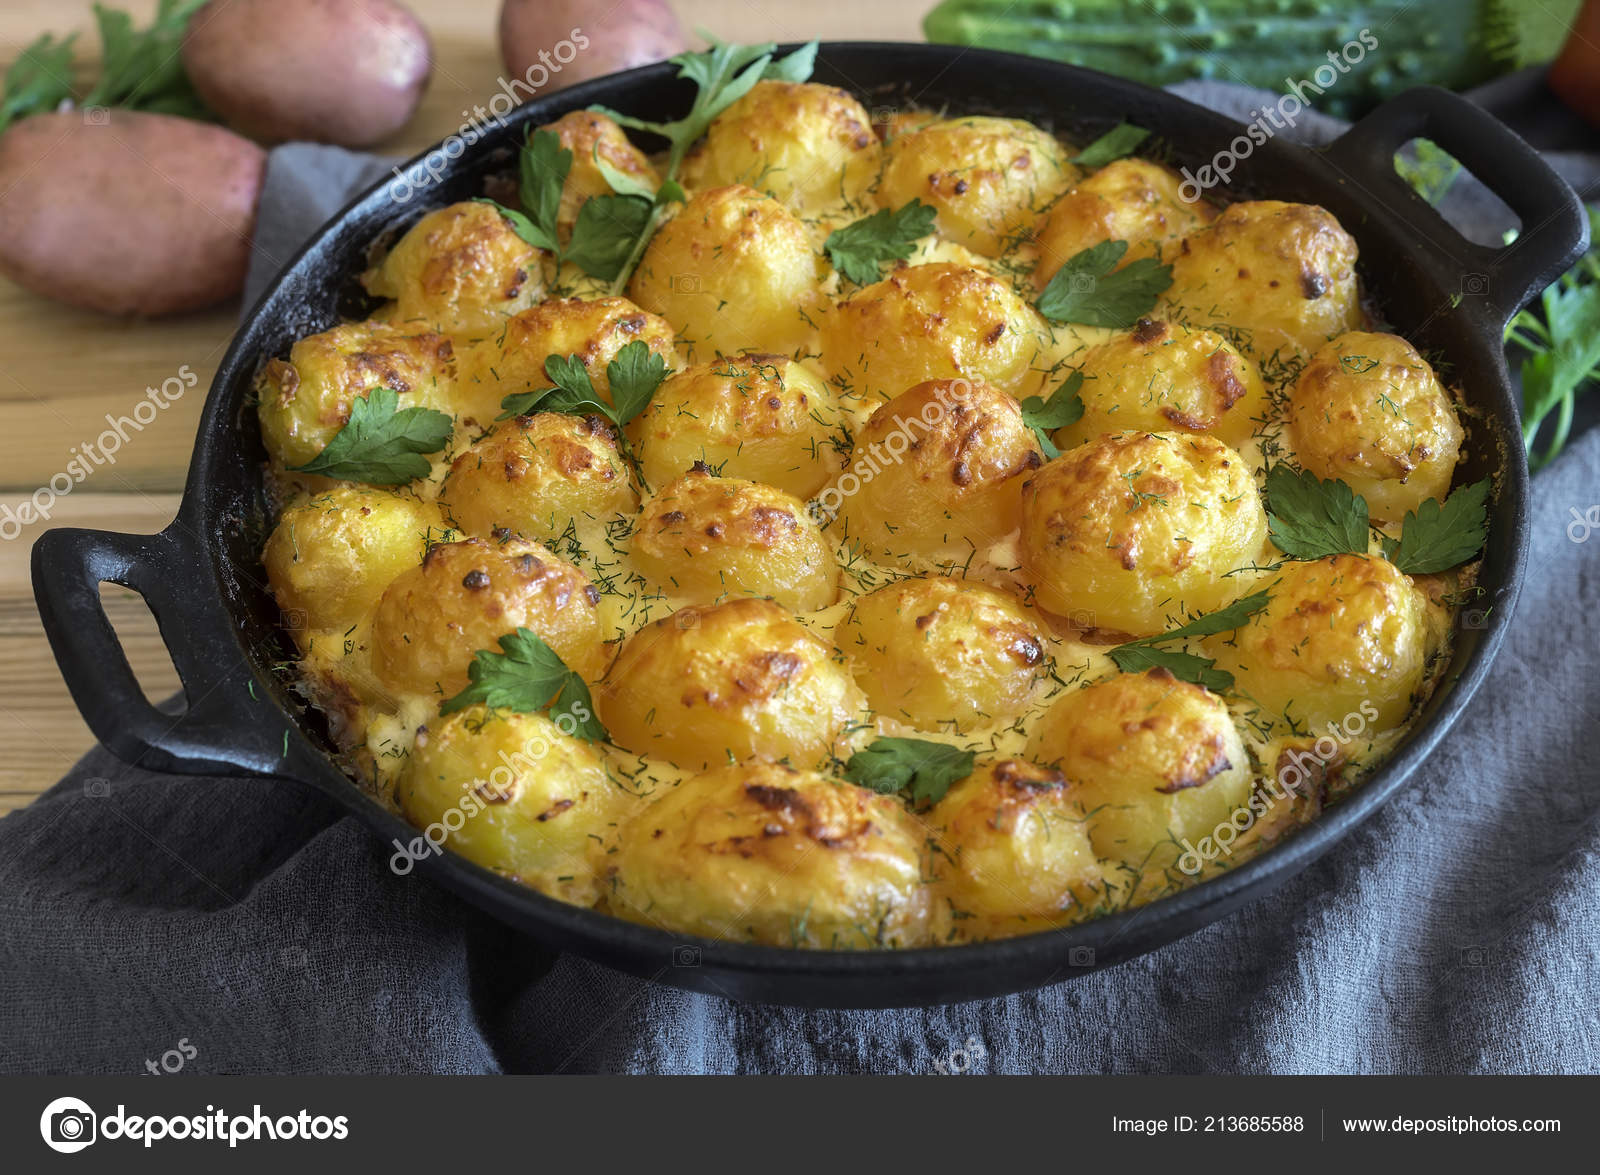 Stupendous Prince Potatoes Baked Oven Young Potatoes Cottage Cheese Eat Interior Design Ideas Gentotryabchikinfo